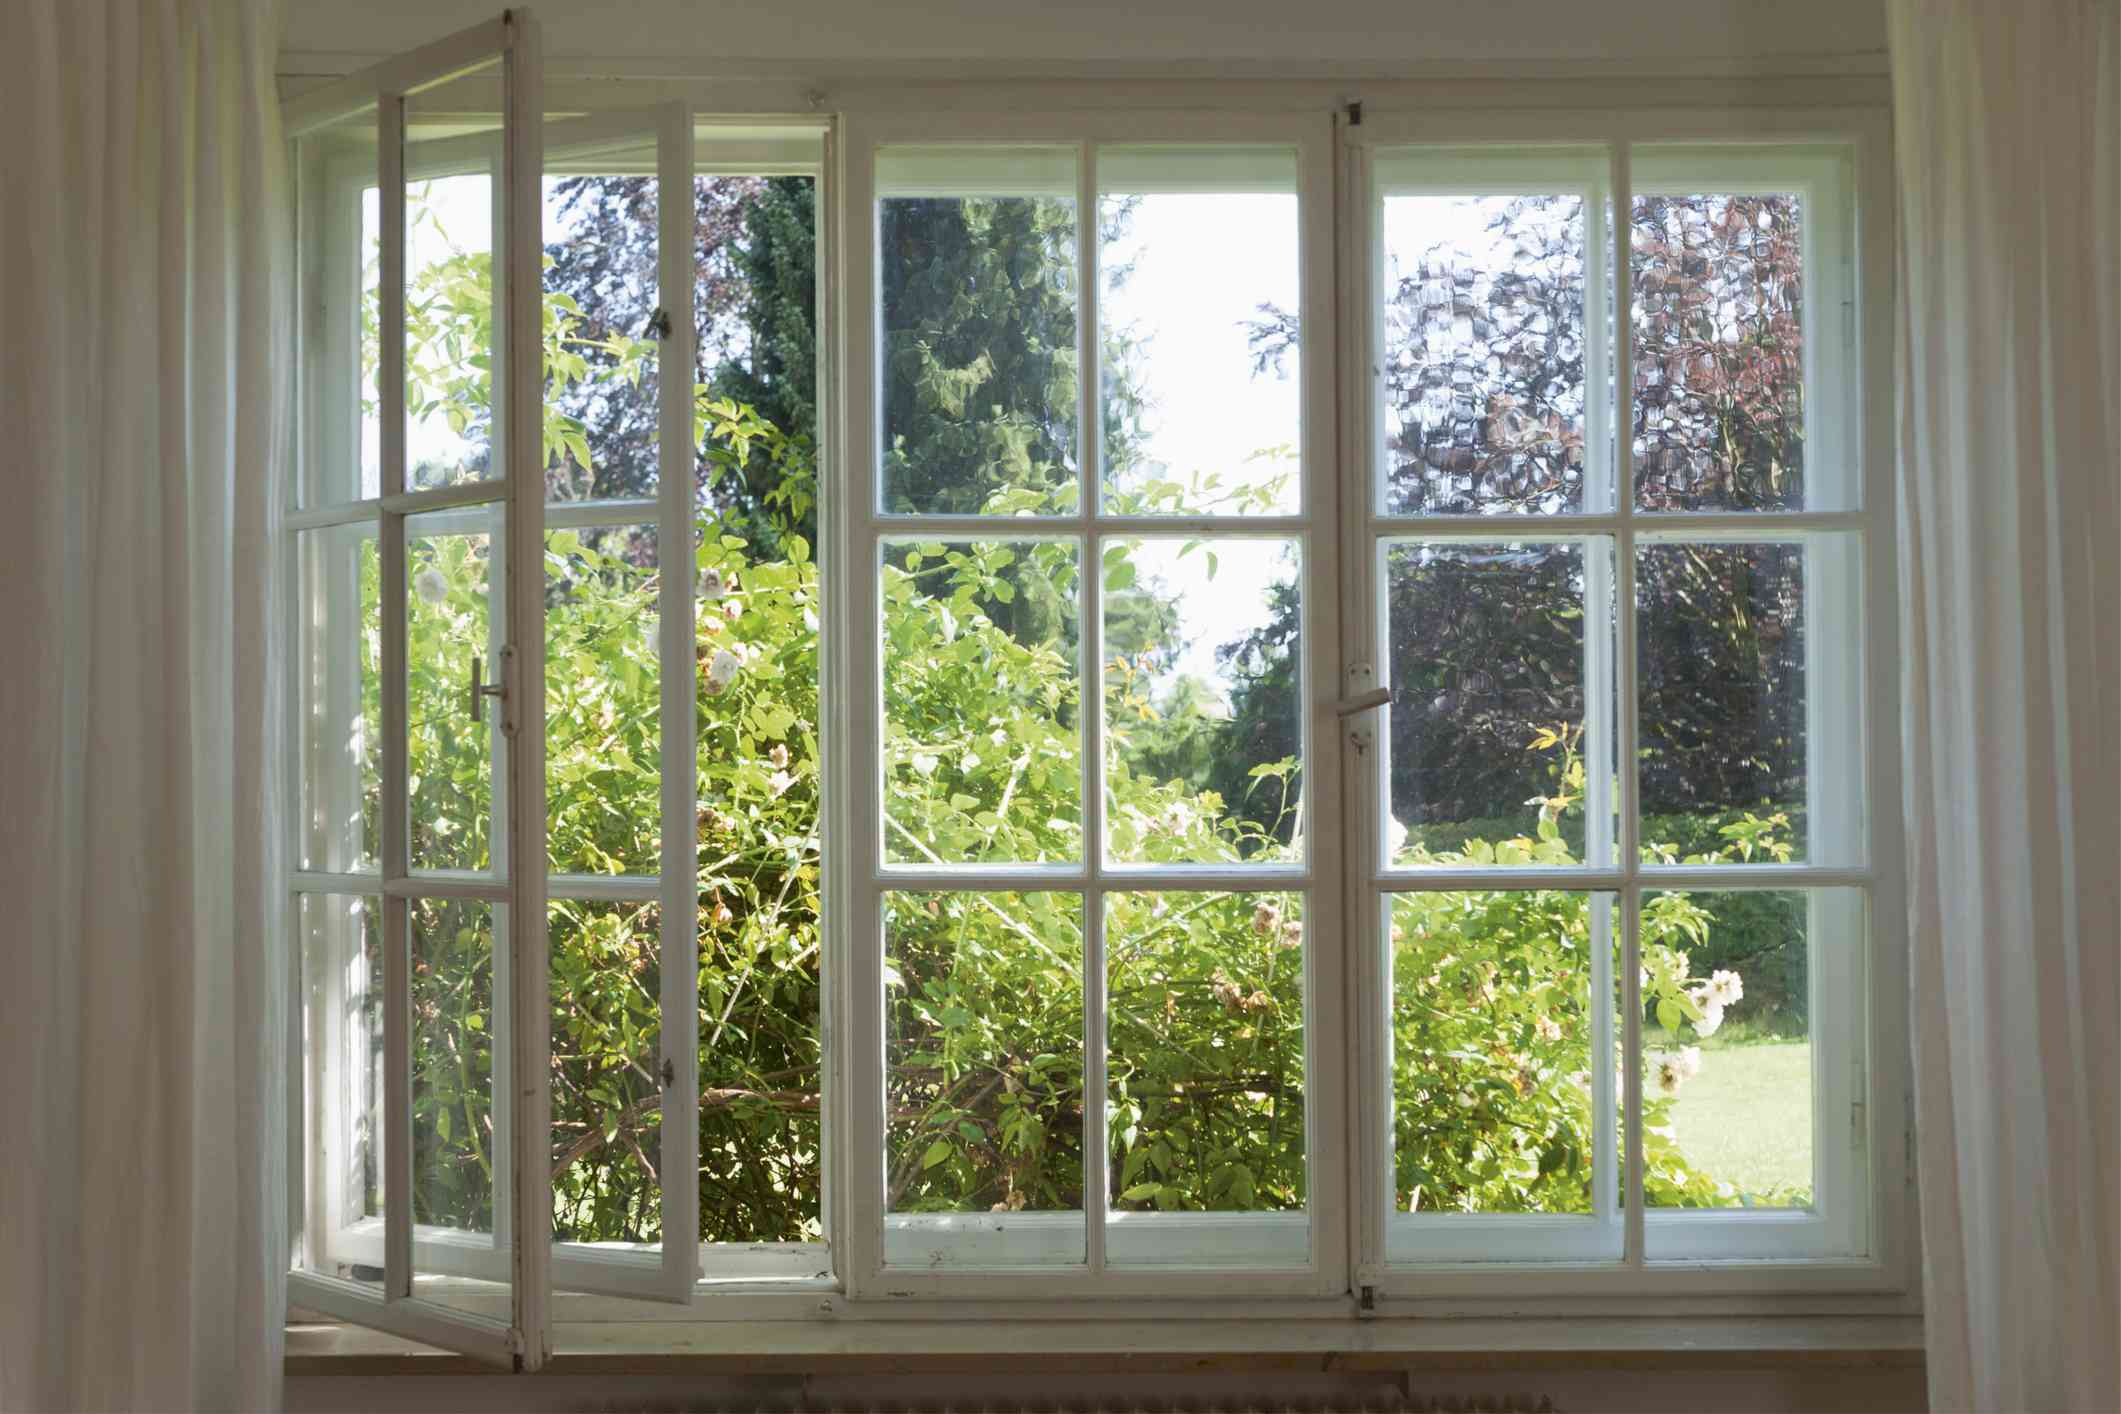 A white grid window is open and looks onto green landscape.